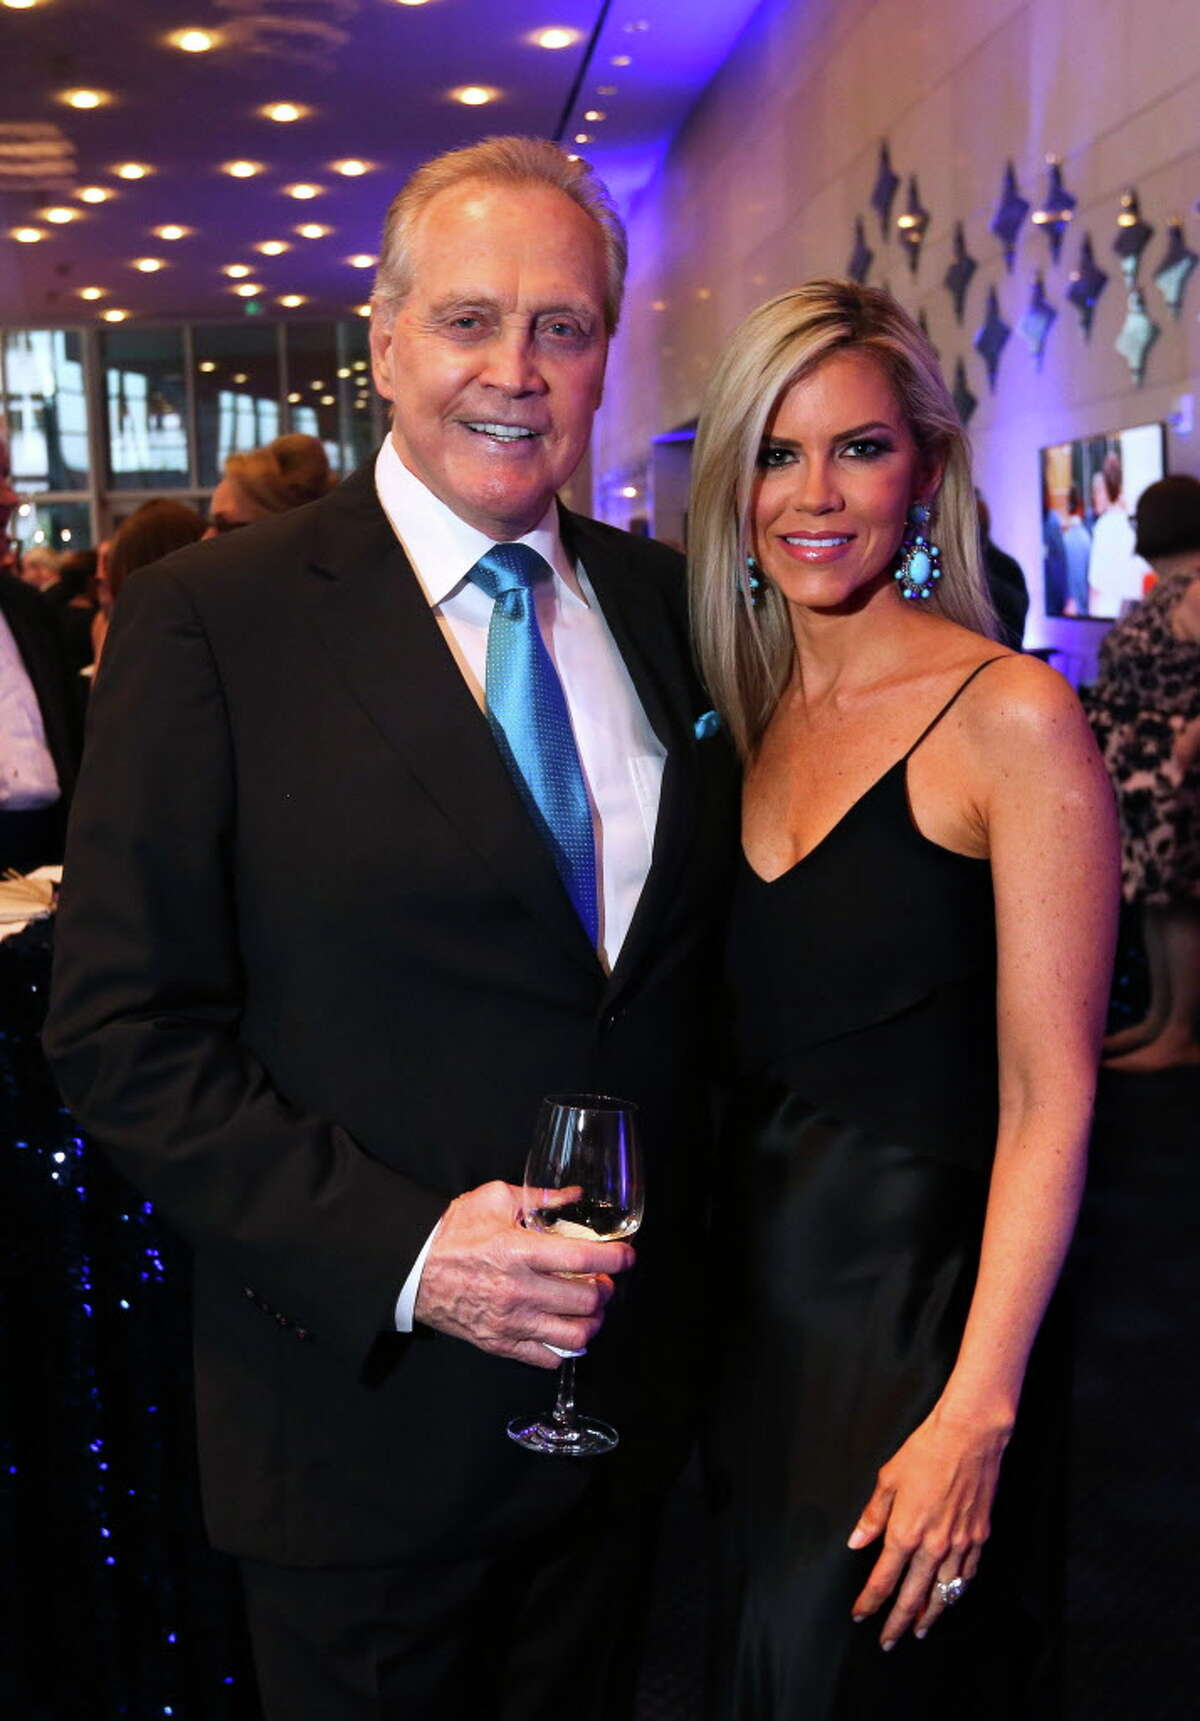 Lee and Faith Majors at the TUTS gala on Saturday, March 25, 2017, at the Hobby Center in Houston. (Annie Mulligan / Freelance)